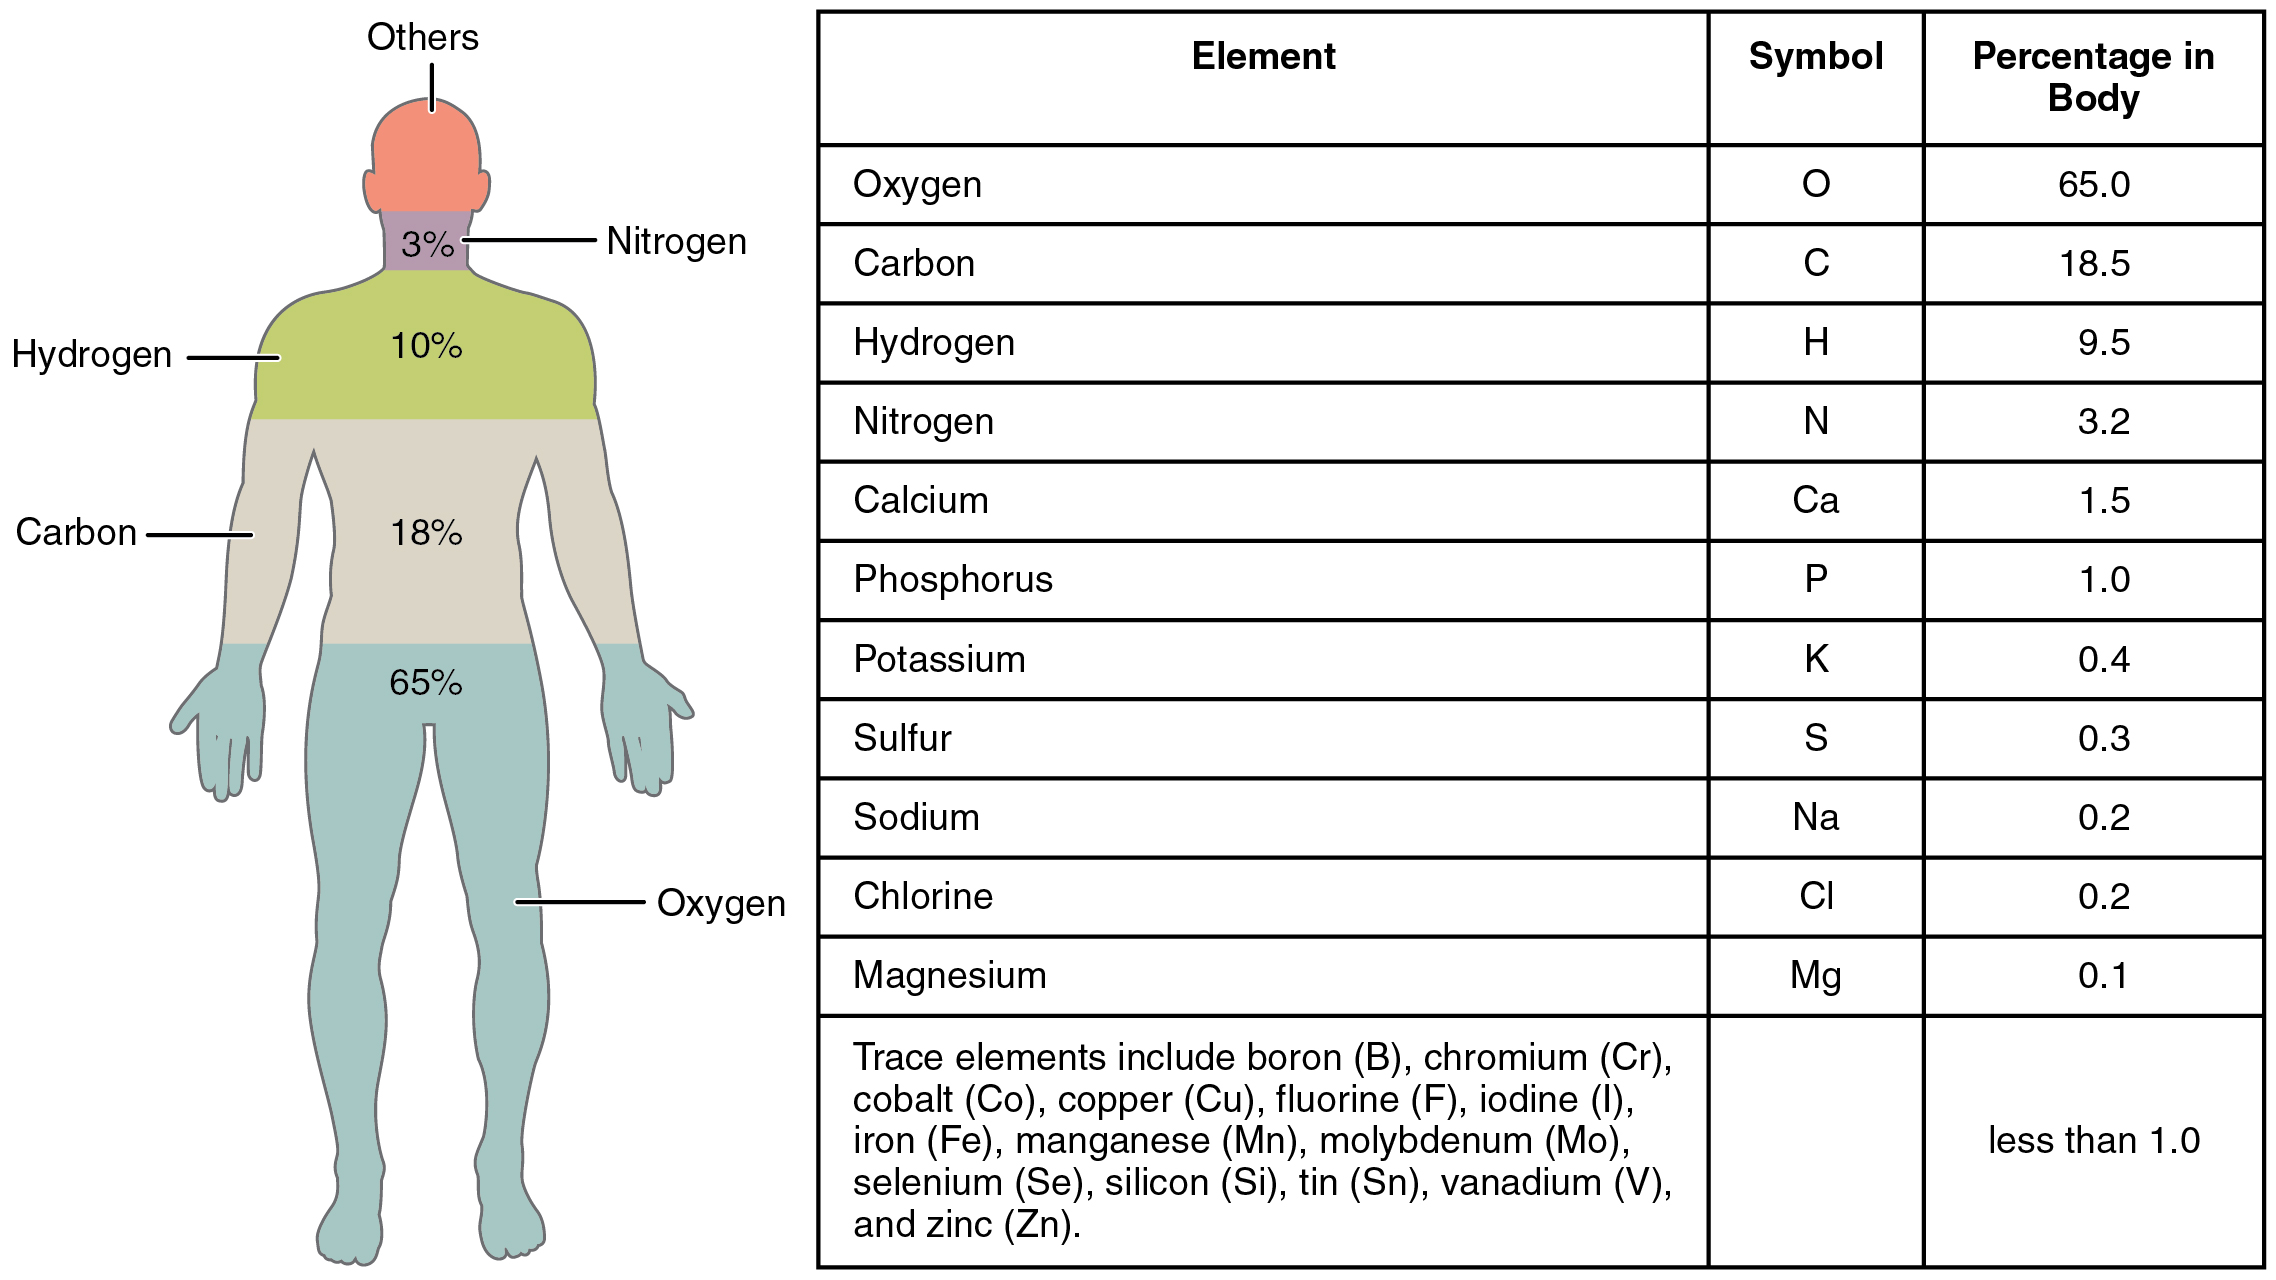 [Image: 201_Elements_of_the_Human_Body-01.jpg]